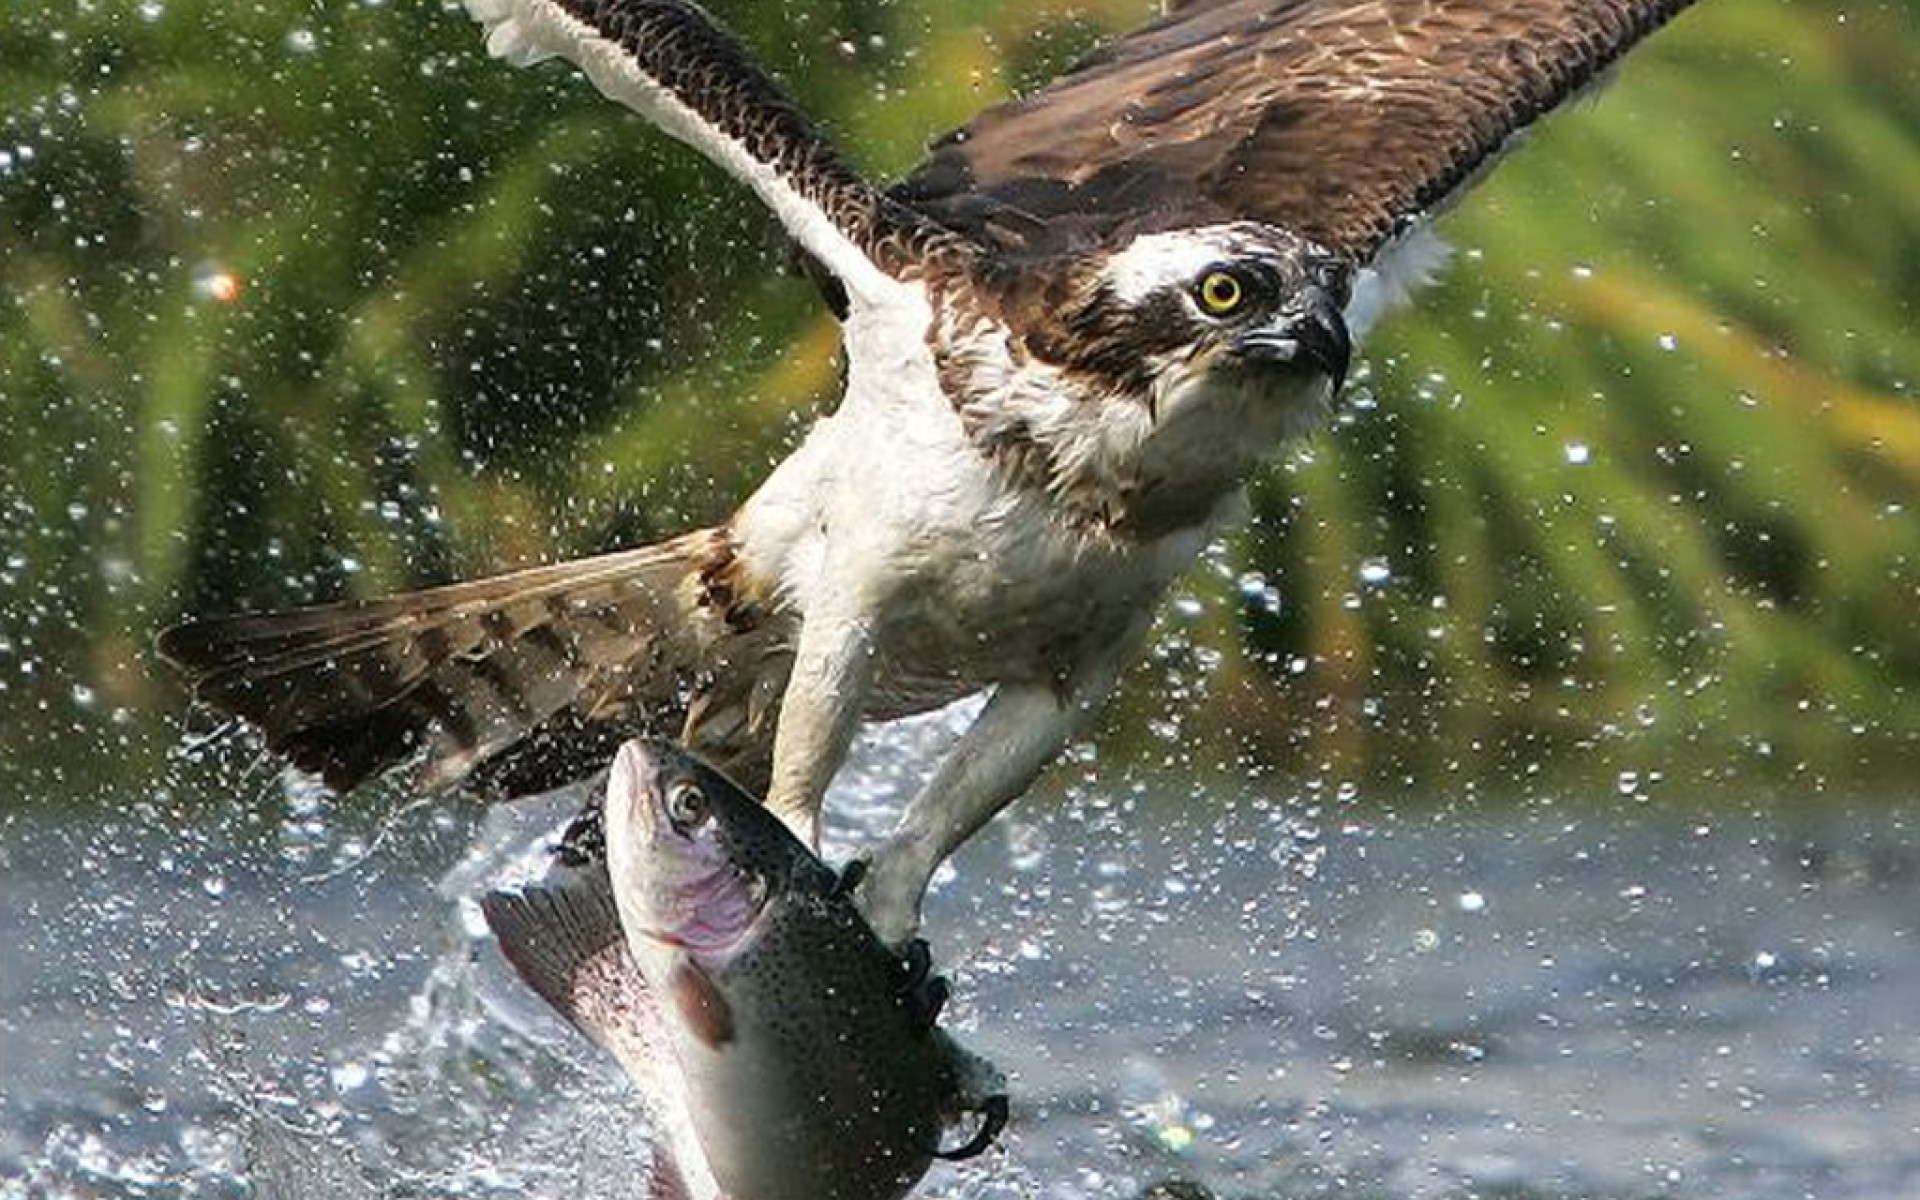 face eyes fishes hunt fishing wildlife nature wallpaper background 1920x1200